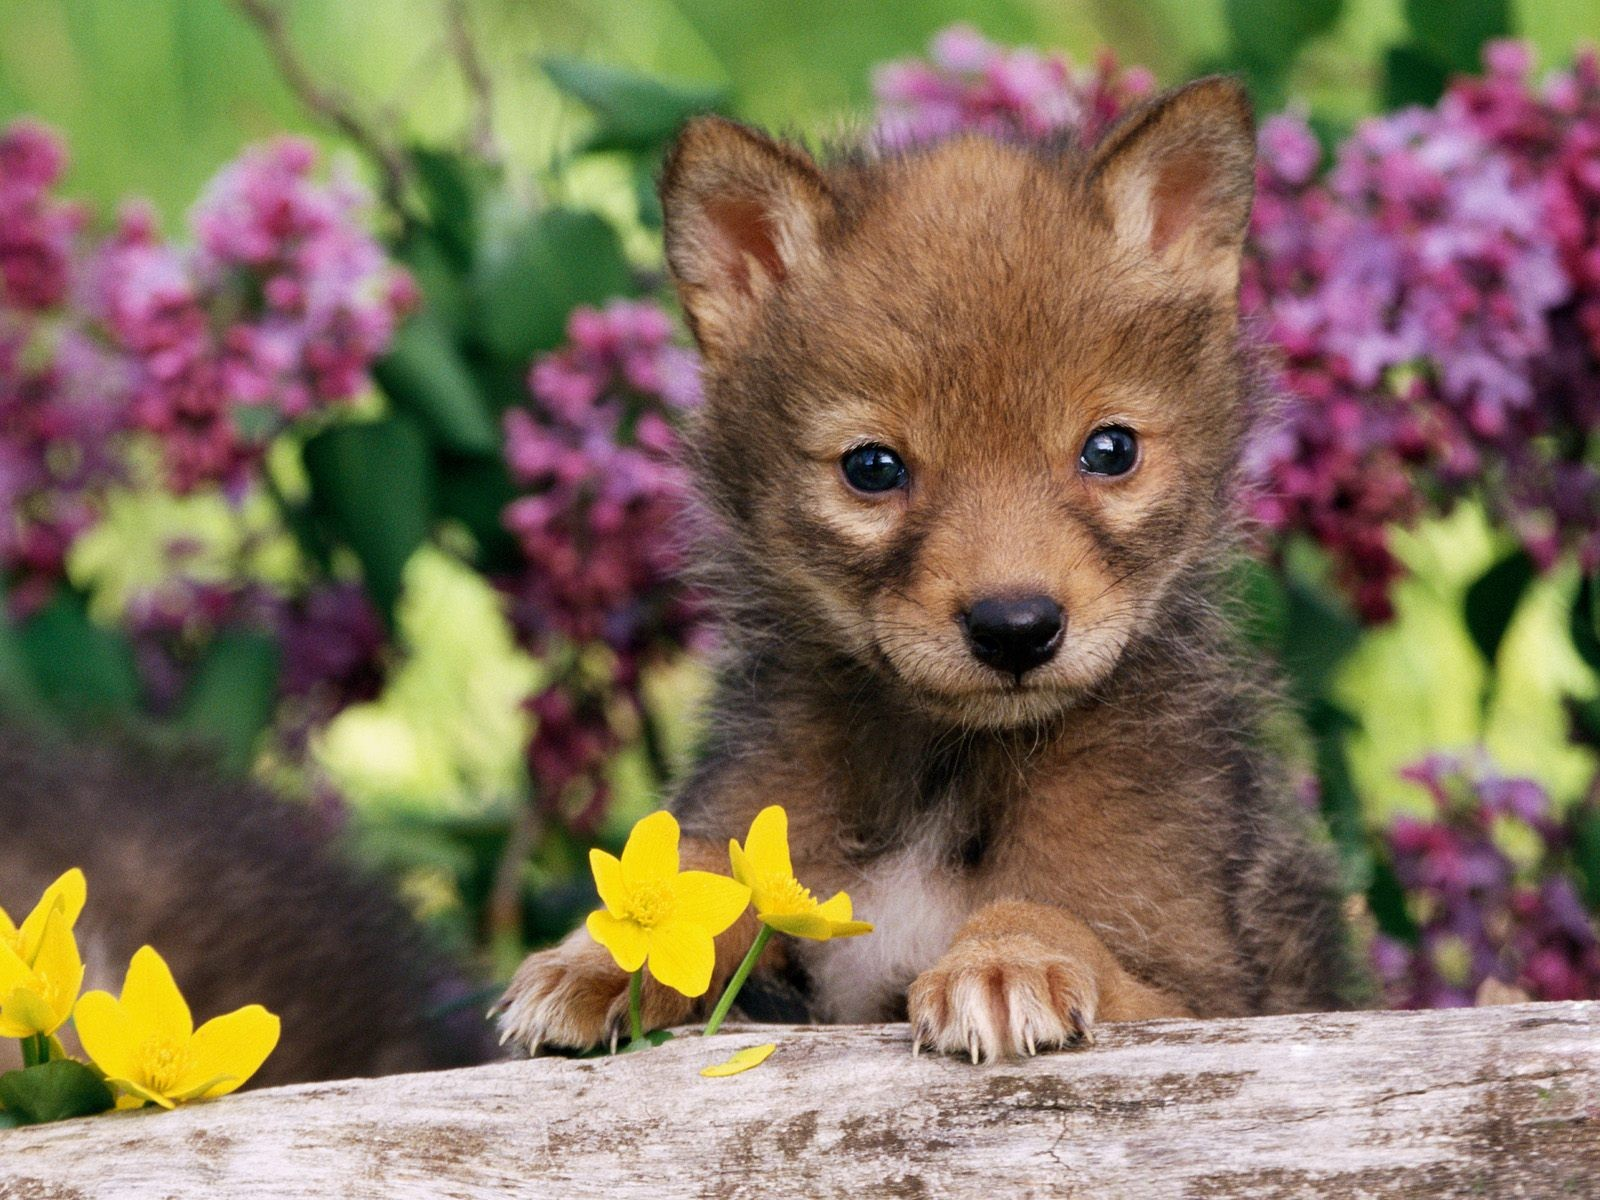 baby coyotes picture - HD1600×1200